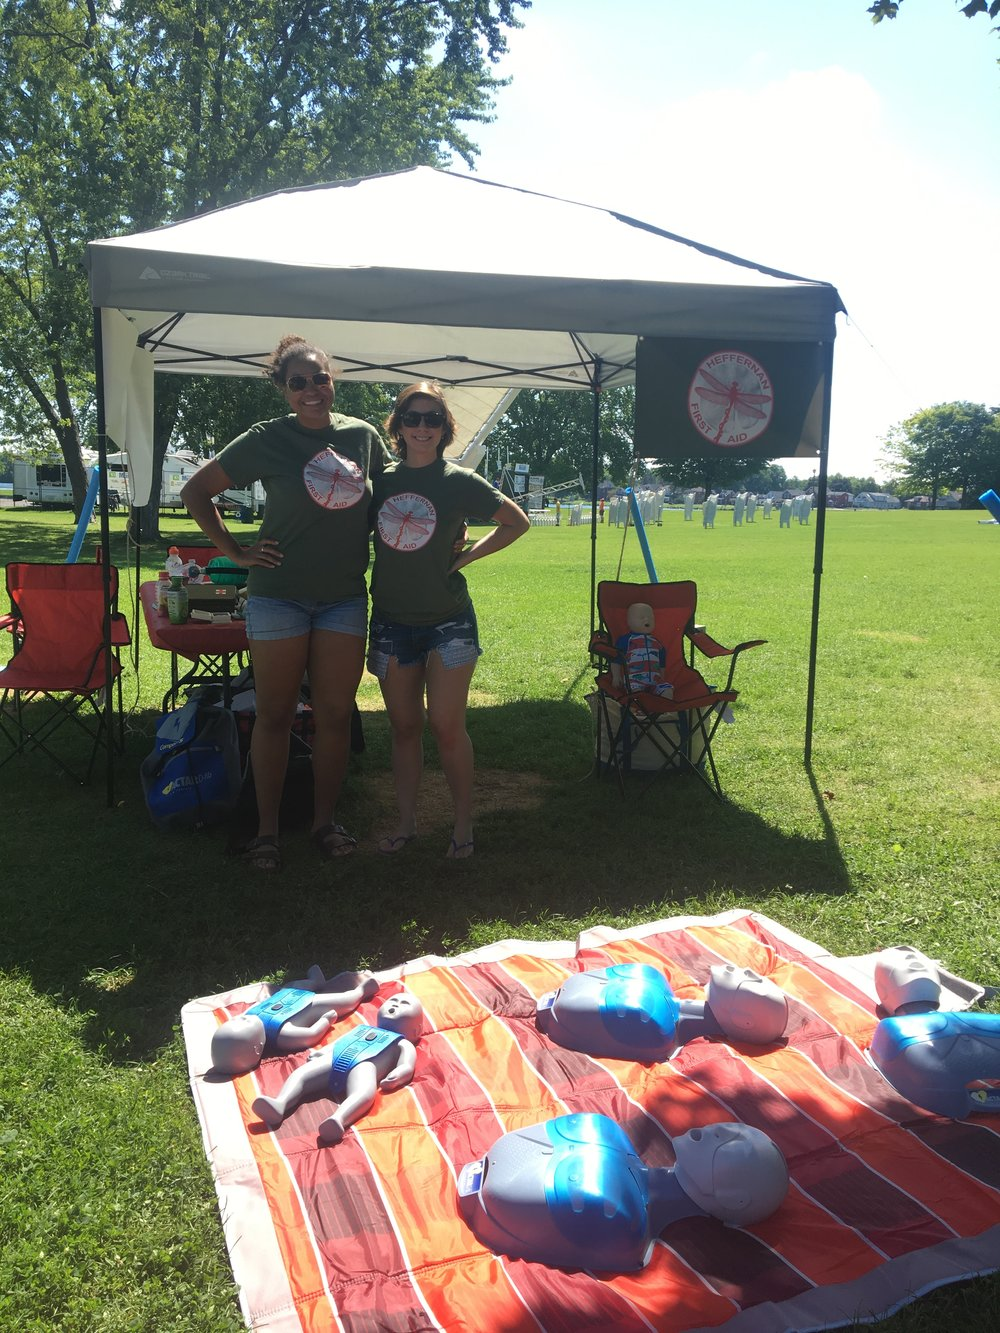 Patricia and Celene attending Peterborough Pulse on Saturday, July 15, 2017. Lots of family fun was had through our hands on CPR and choking skills practice and water smart activities. Thank you to everyone who came by to our booth to say hello!